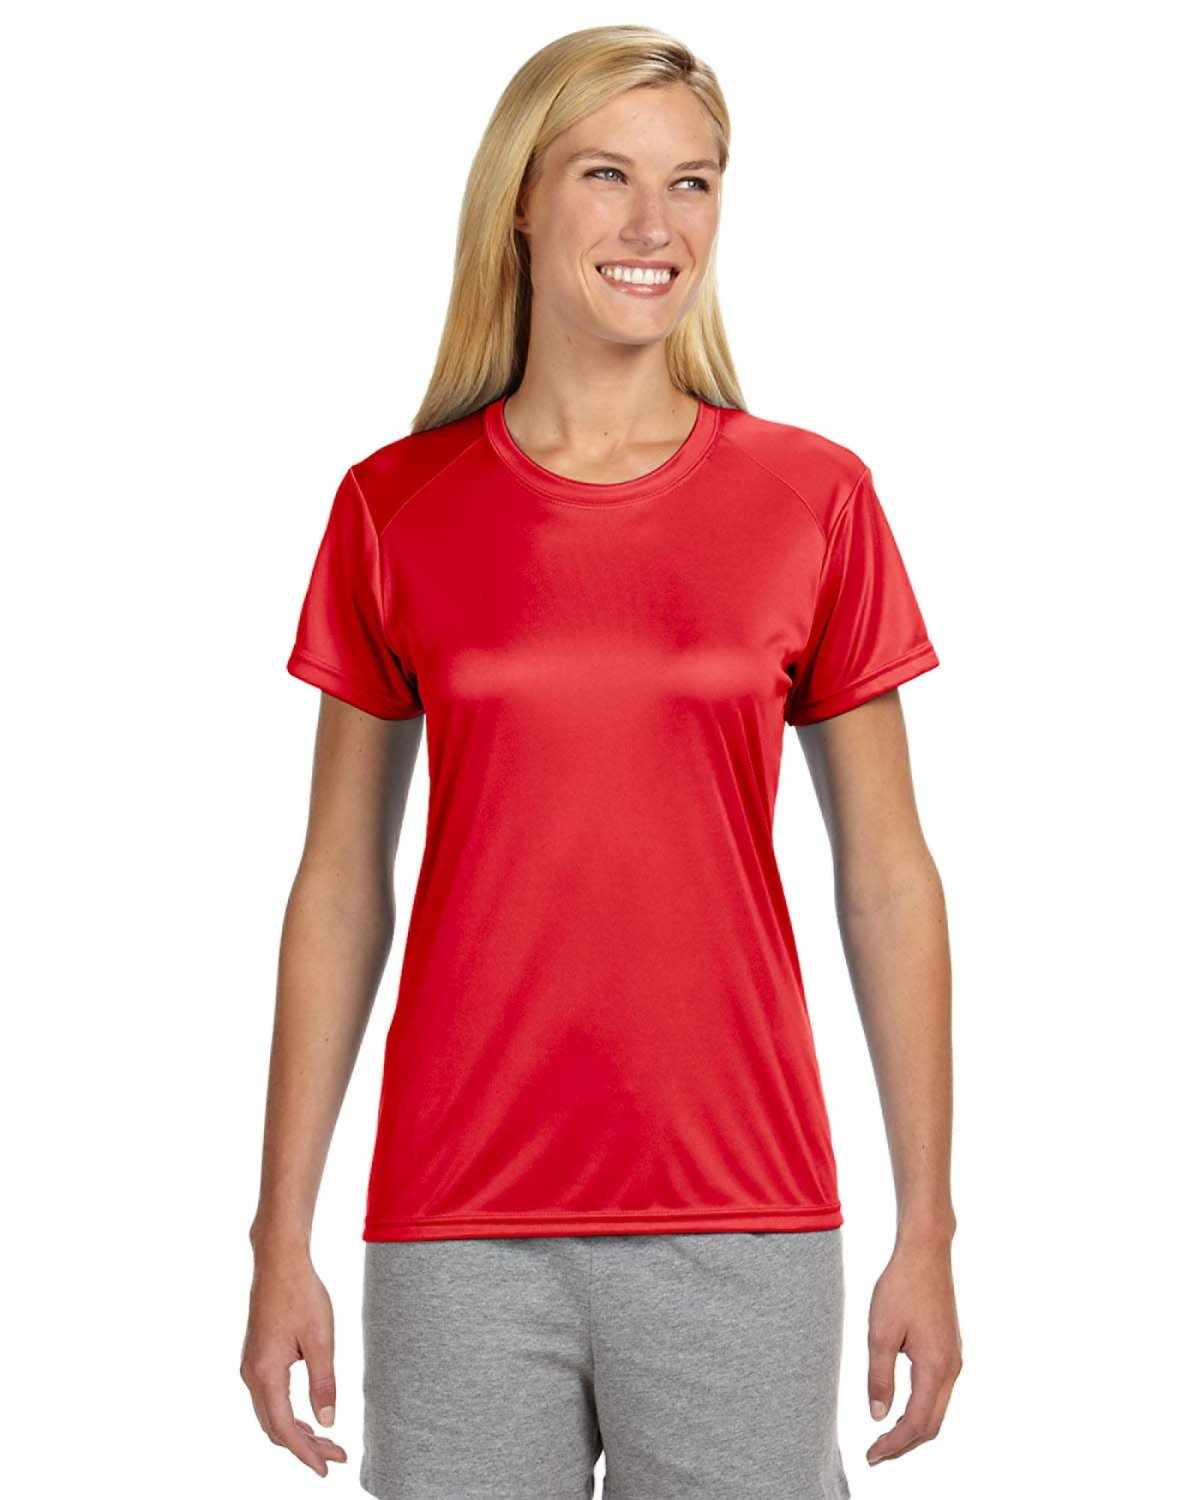 A4 Ladies' Cooling Performance T-Shirt SCARLET